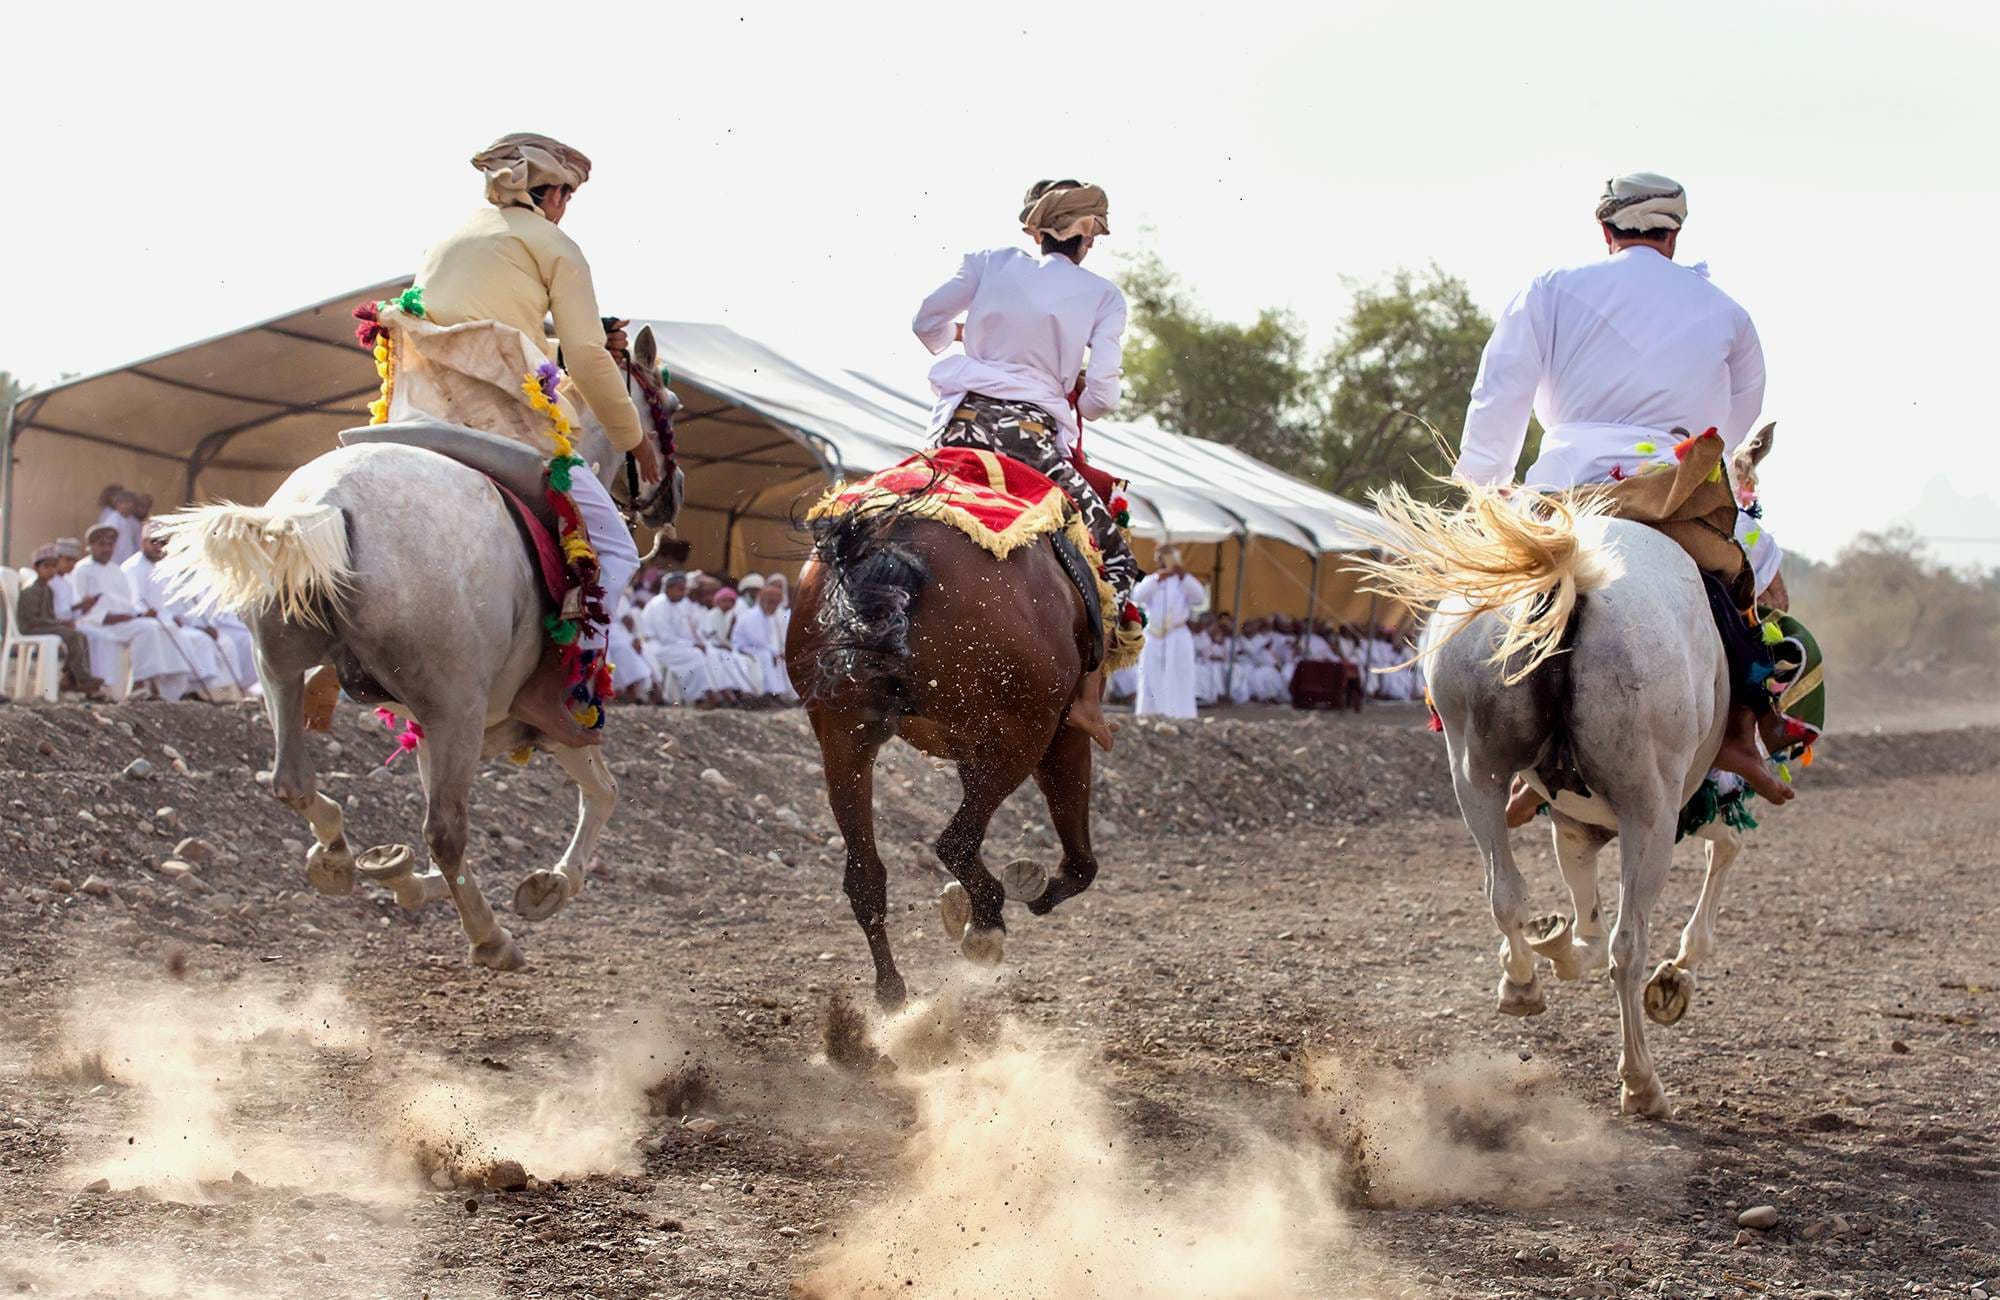 oman-horse-riding-dust-cover